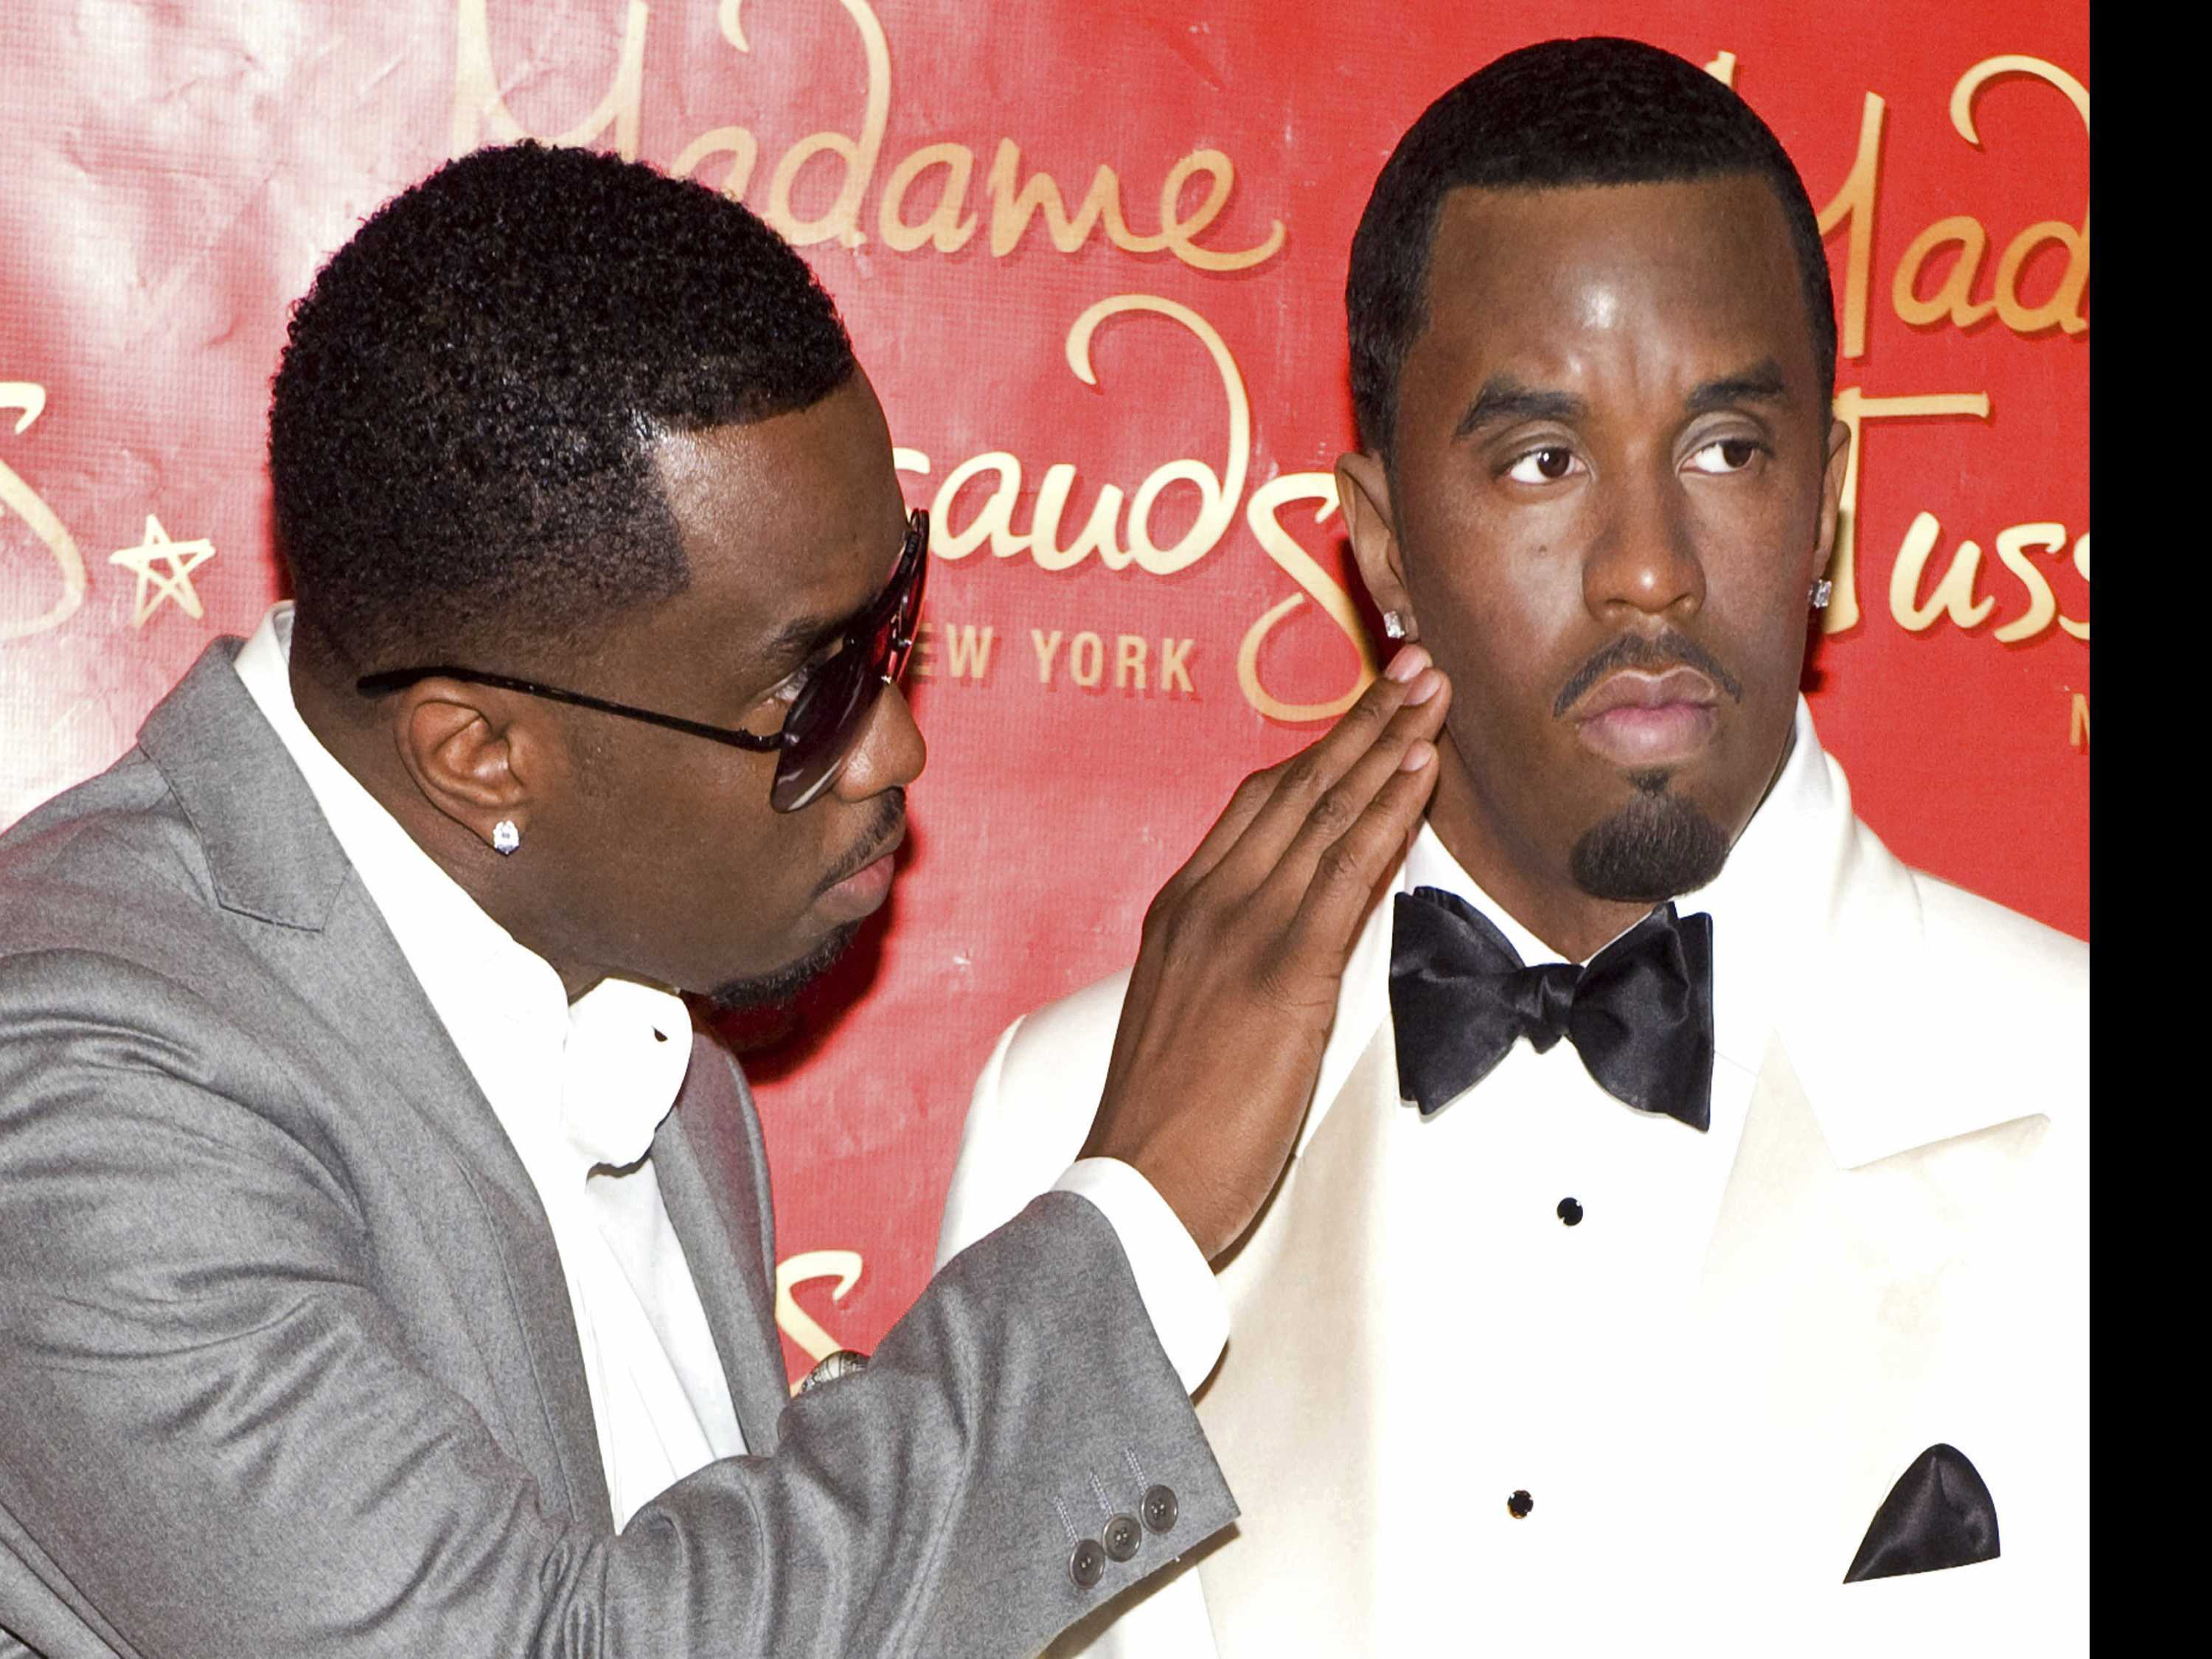 Vandal Topples Wax Statue of Sean 'Diddy' Combs